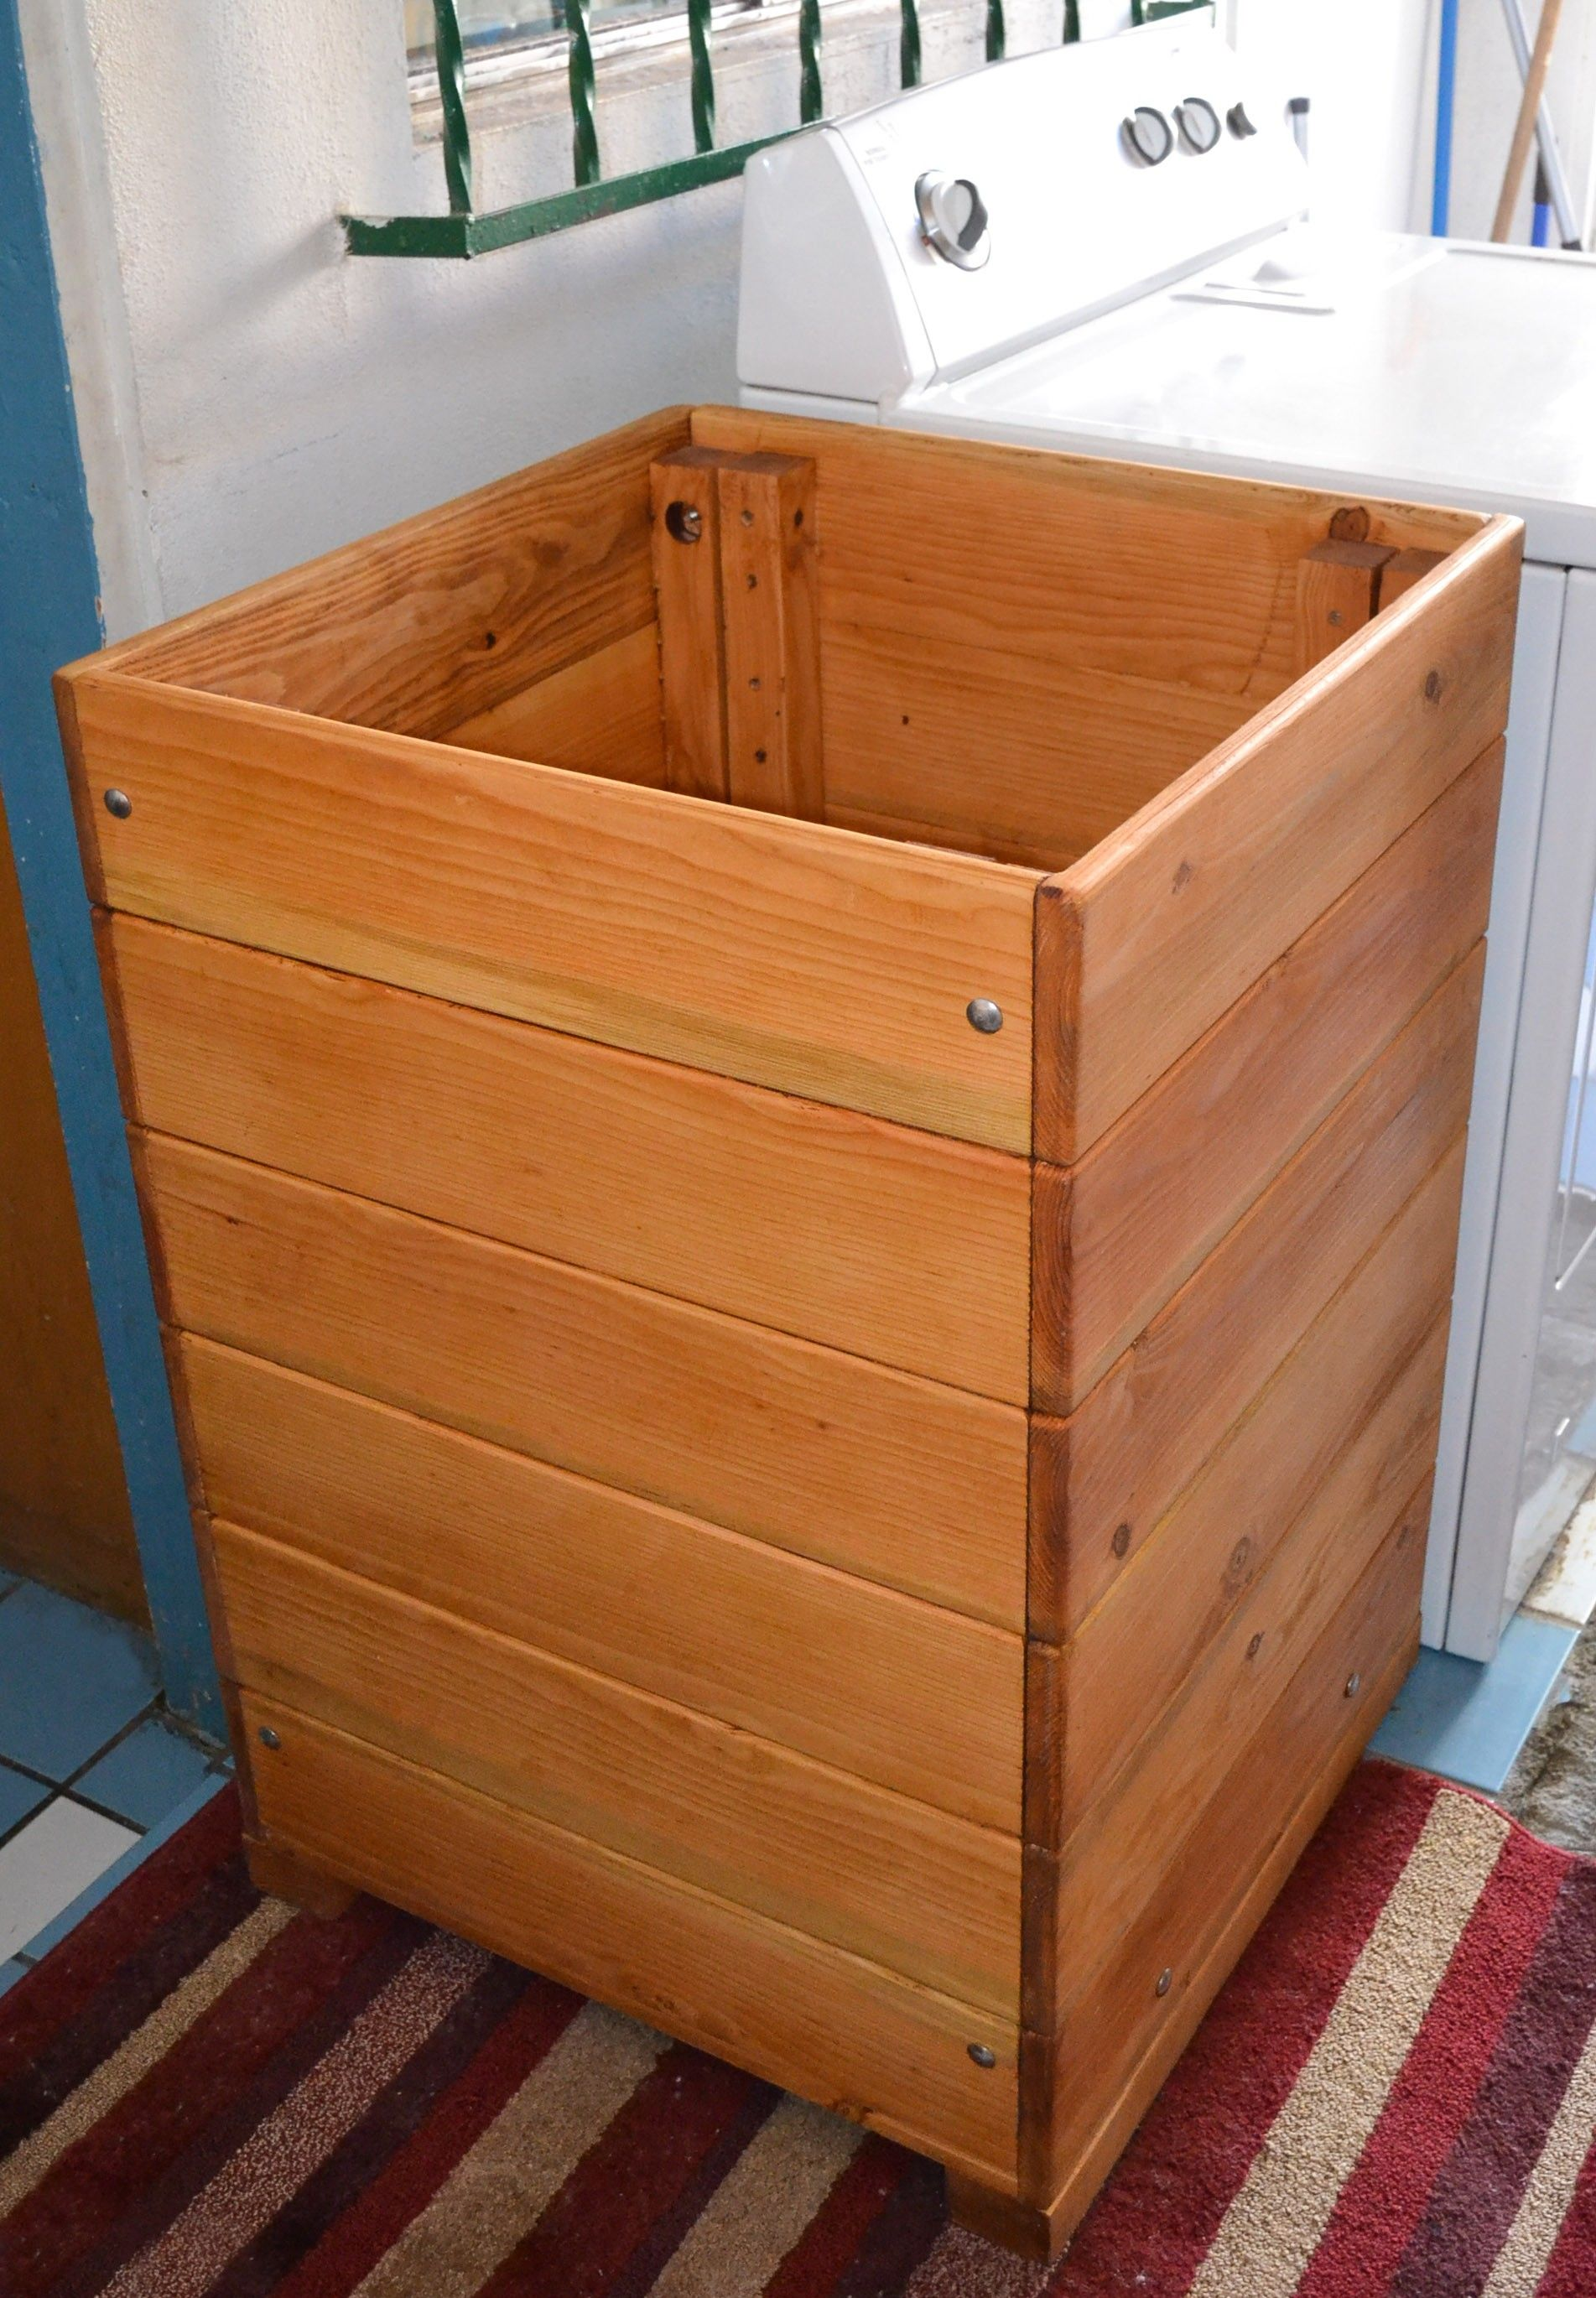 Rustic Wood Laundry Basket Hamper For Wooden Laundry